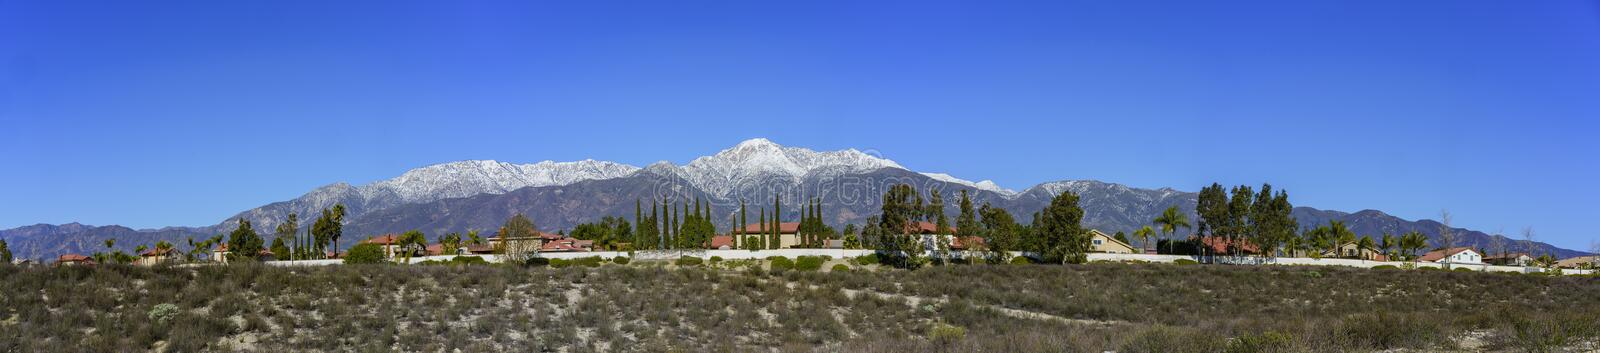 Beautiful Mount Baldy view from Rancho Cucamonga. Beautiful snowy Mount Baldy with some building below, view from Rancho Cucamonga royalty free stock photos